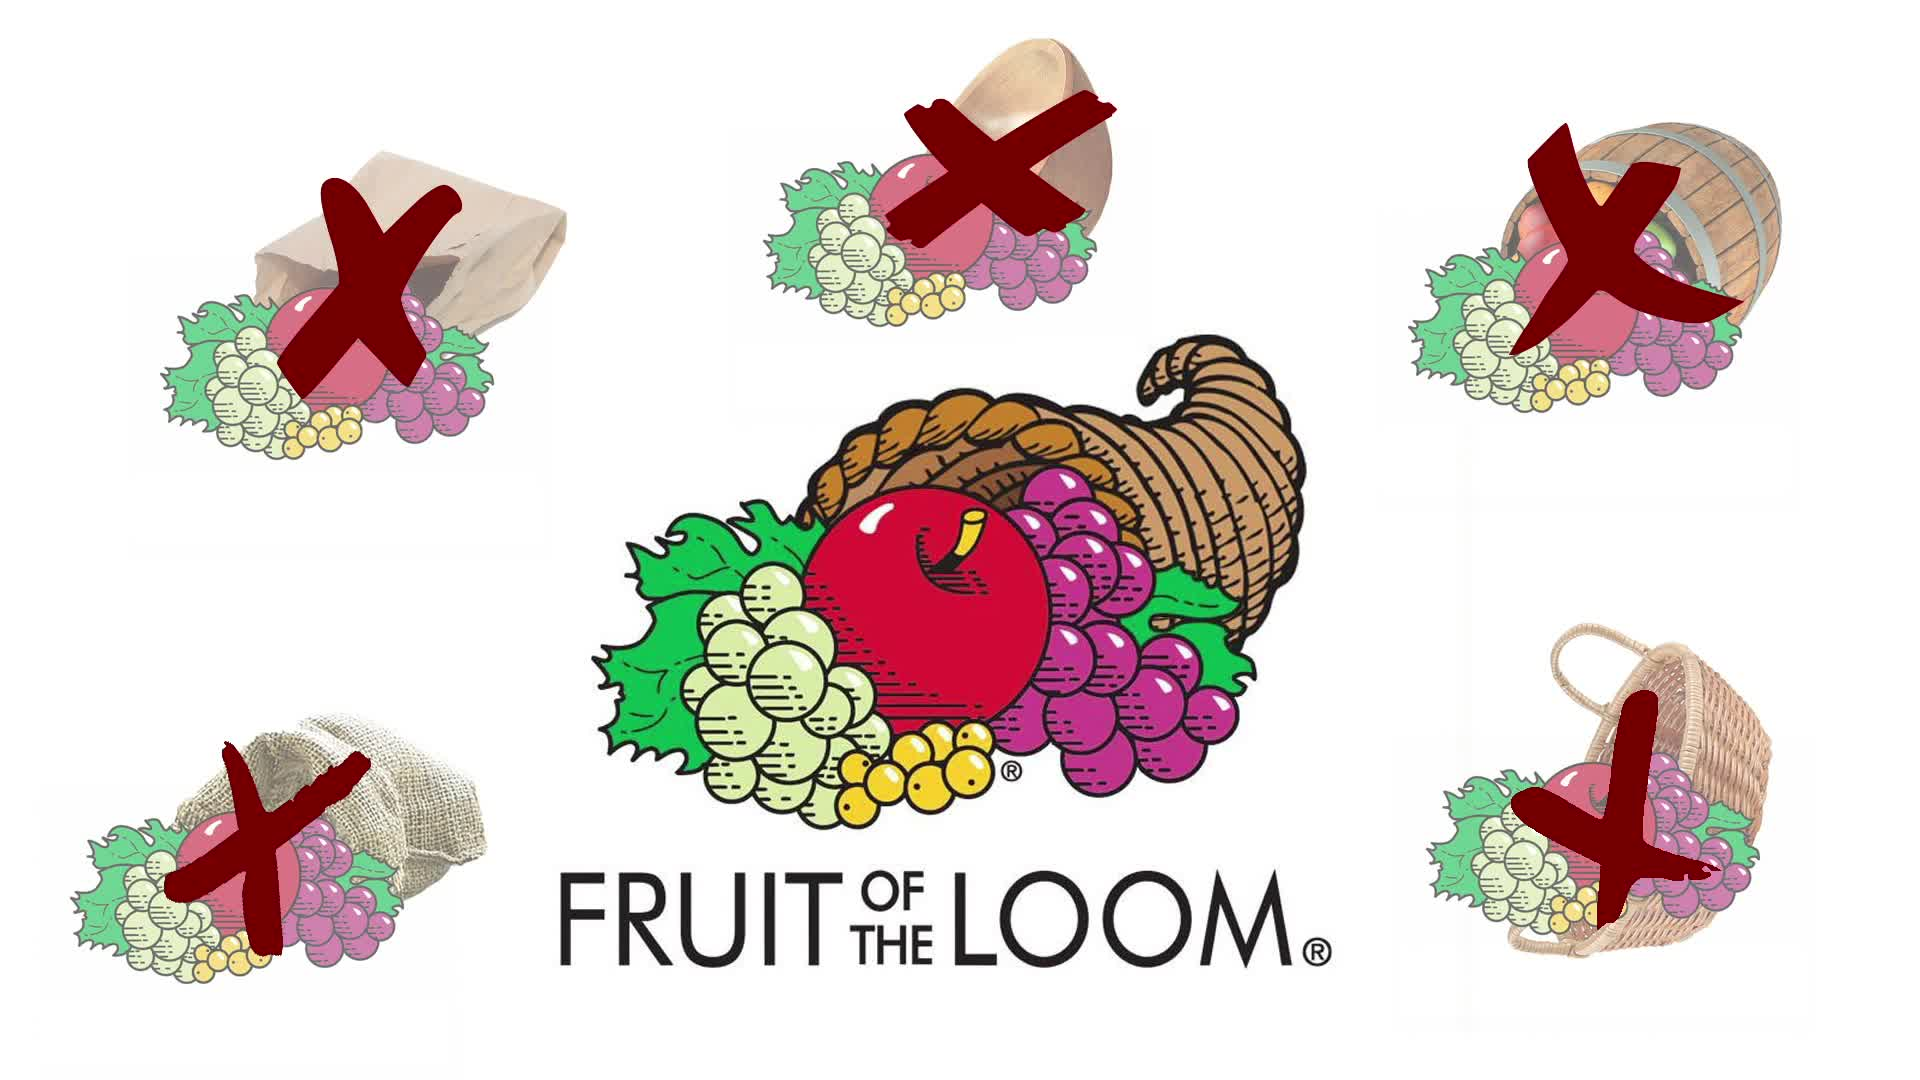 fruit of the loom logo mandela effect.